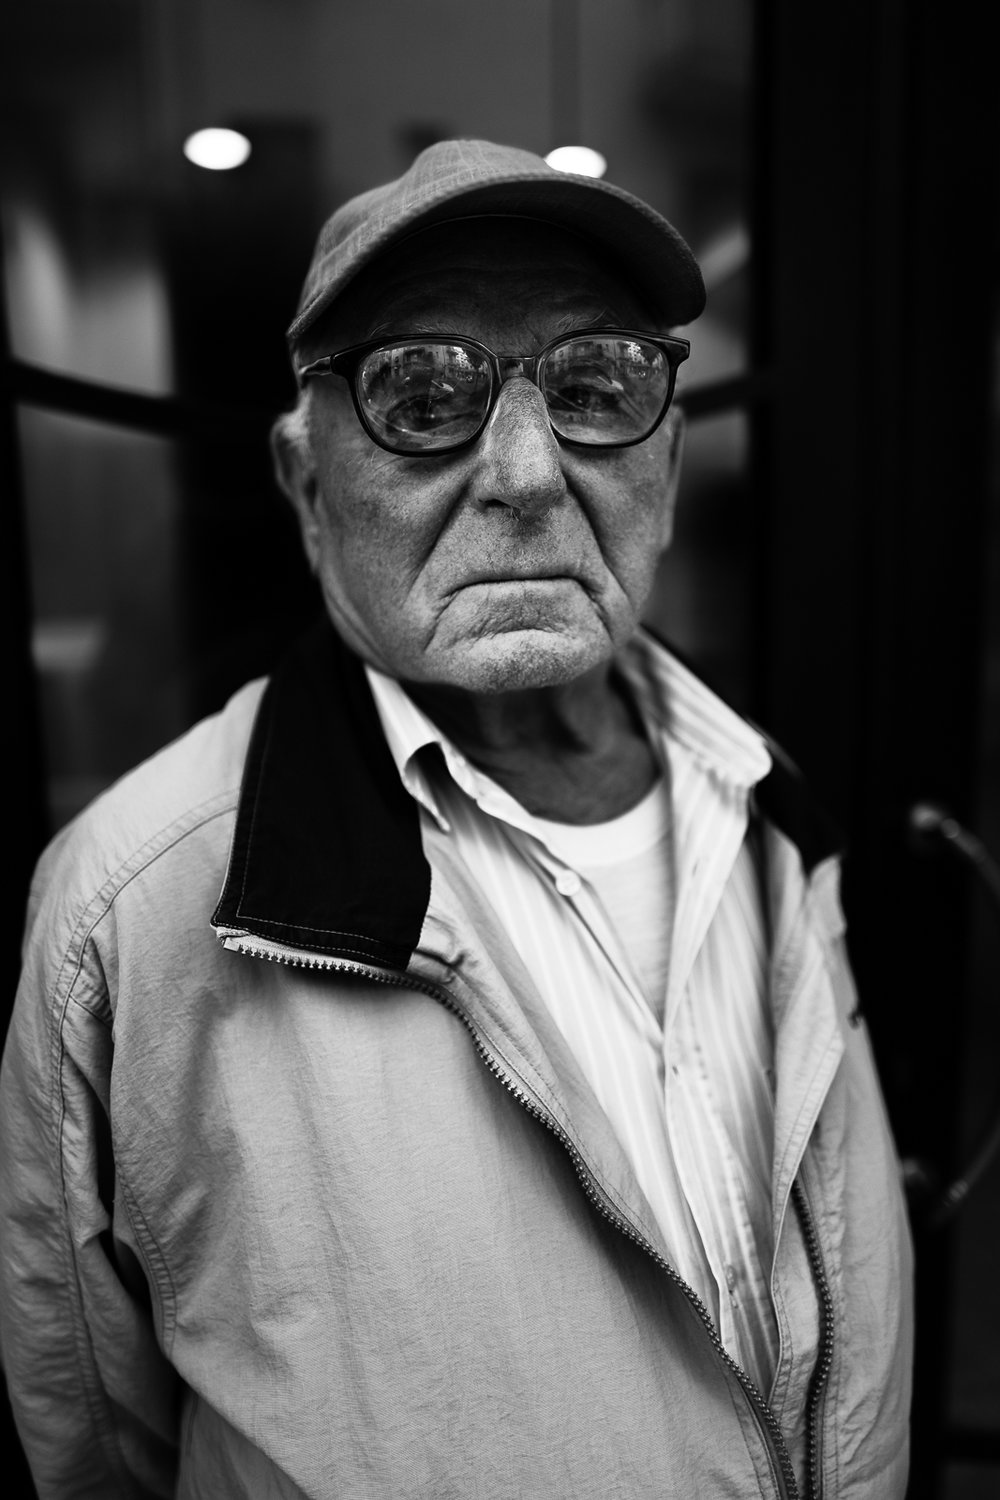 Portraits from the streets